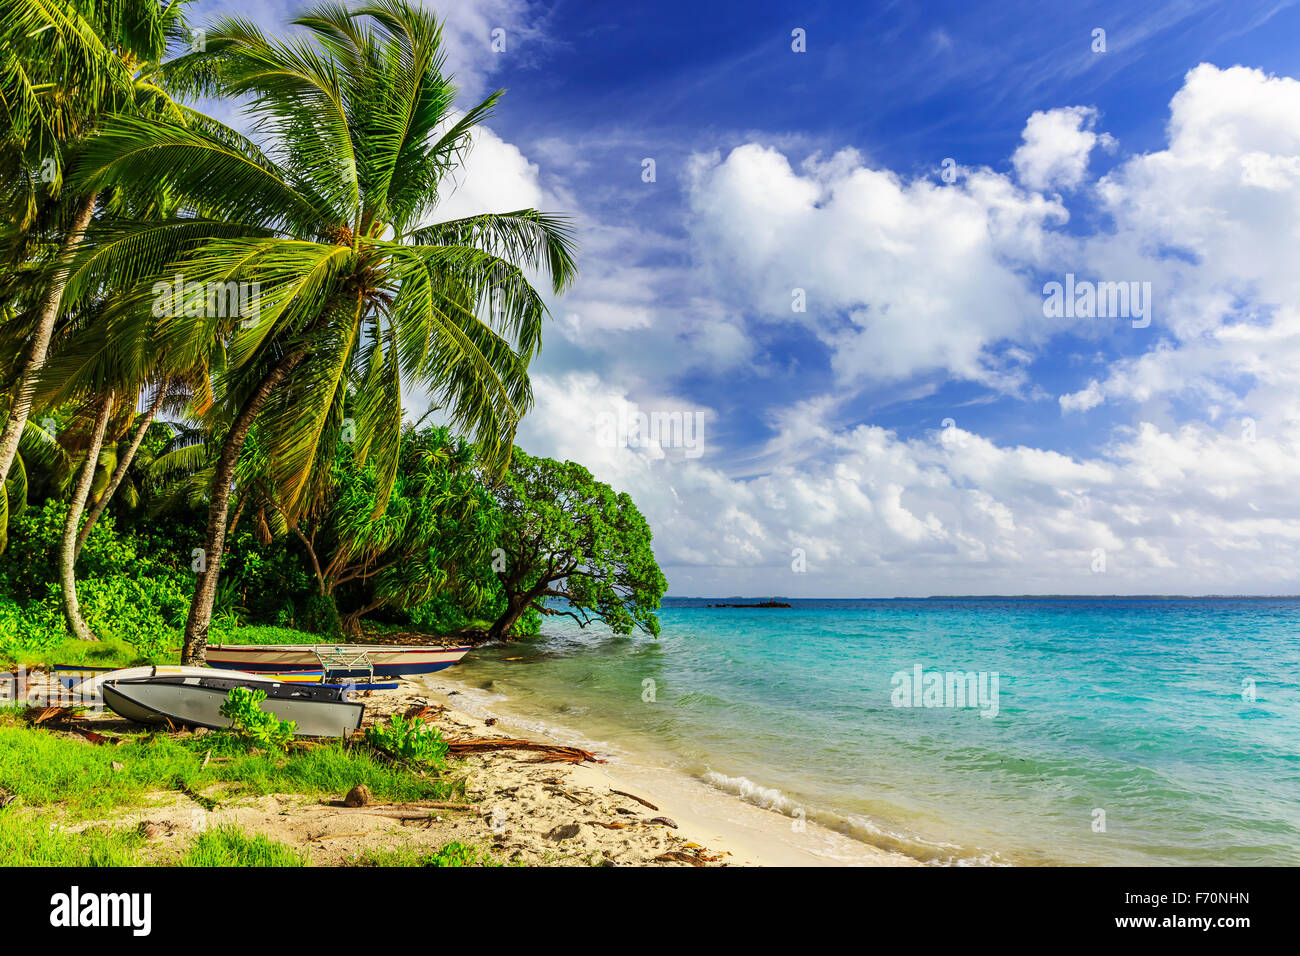 Tabuaeran beach on the Fanning Island, Republic of Kiribati - Stock Image